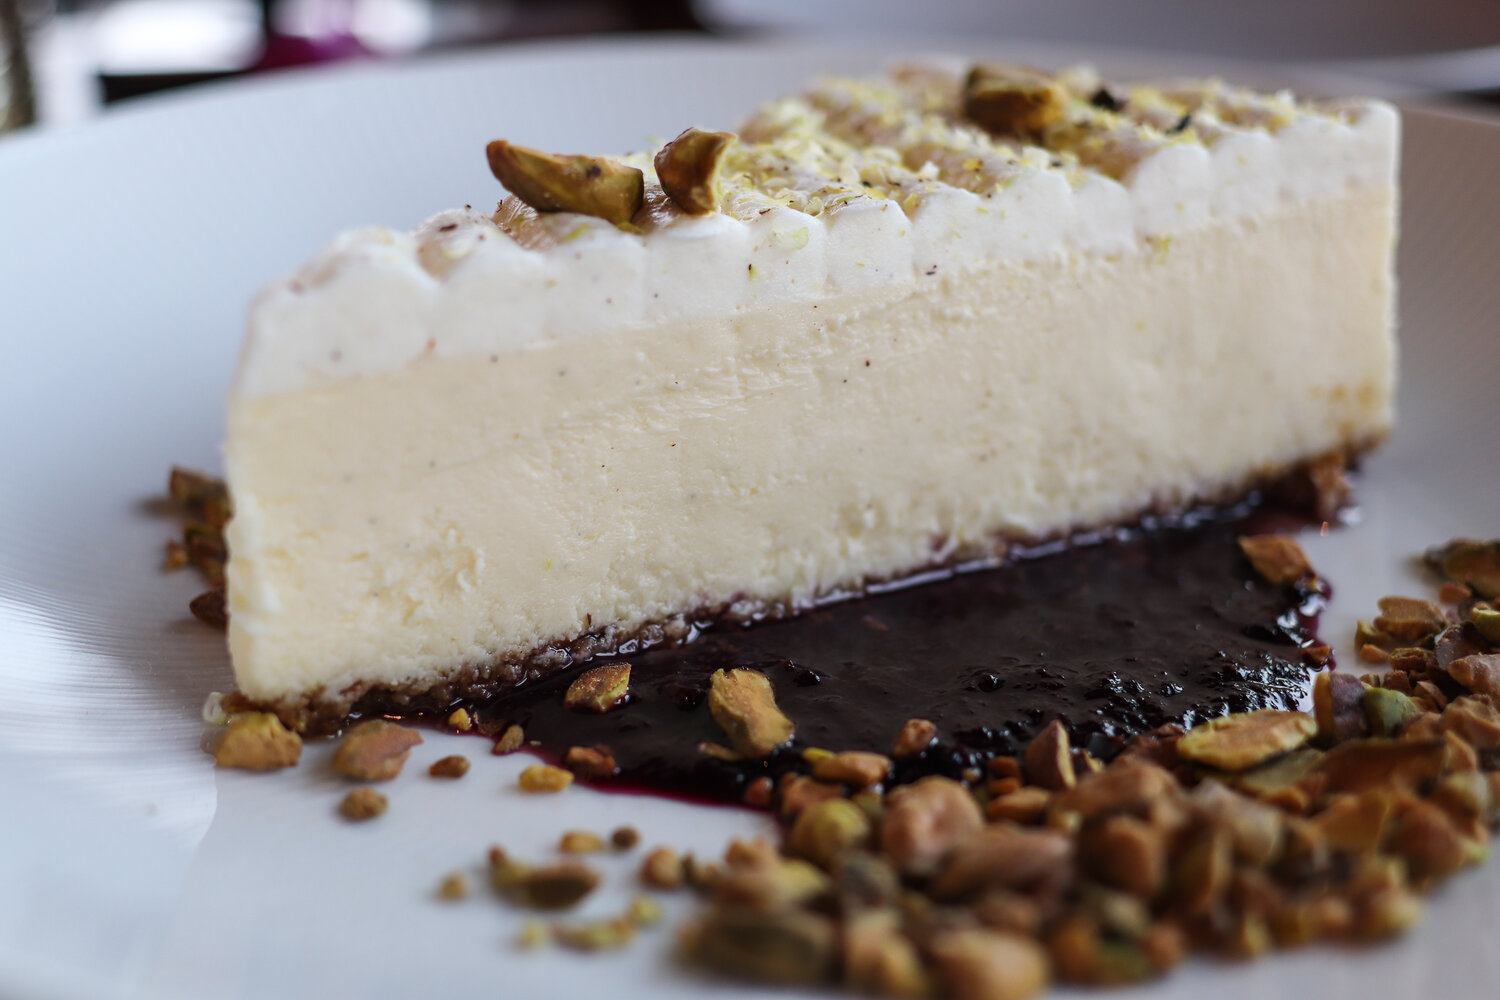 Pistachio cheesecake has been a big hit at the restaurant